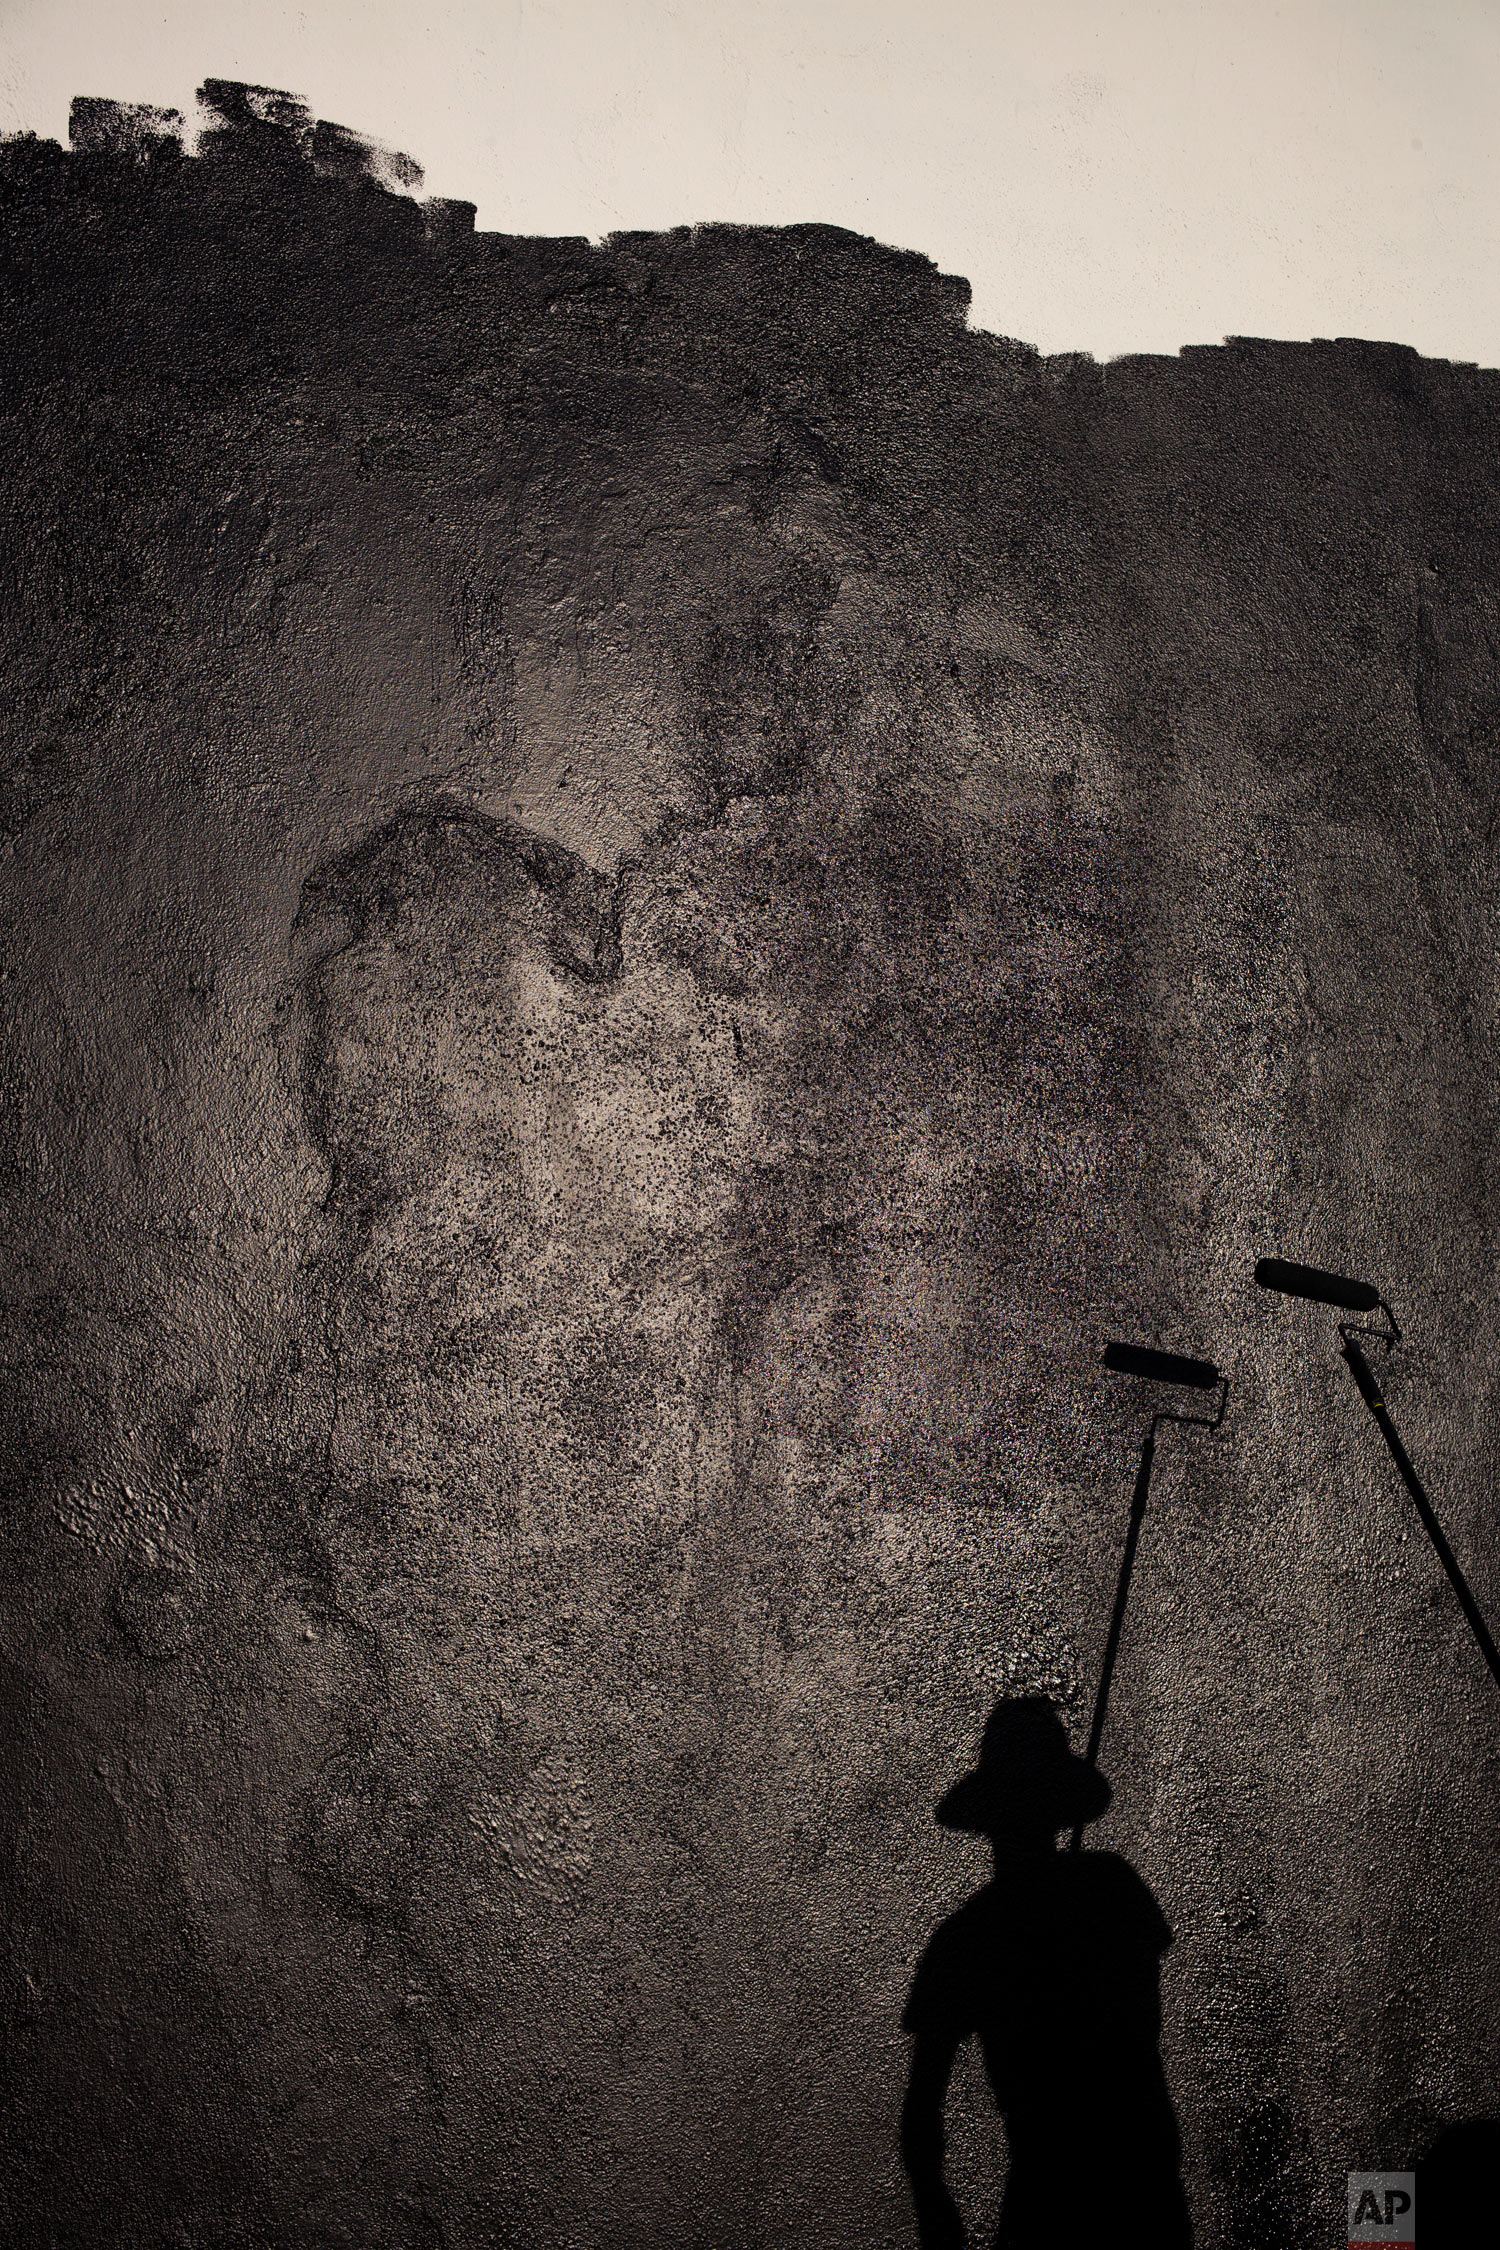 Artist's assistant Matthew Crumpton casts a shadow as he prepares a wall for a mural Monday, Oct. 8, 2018, in Los Angeles. (AP Photo/Jae C. Hong)